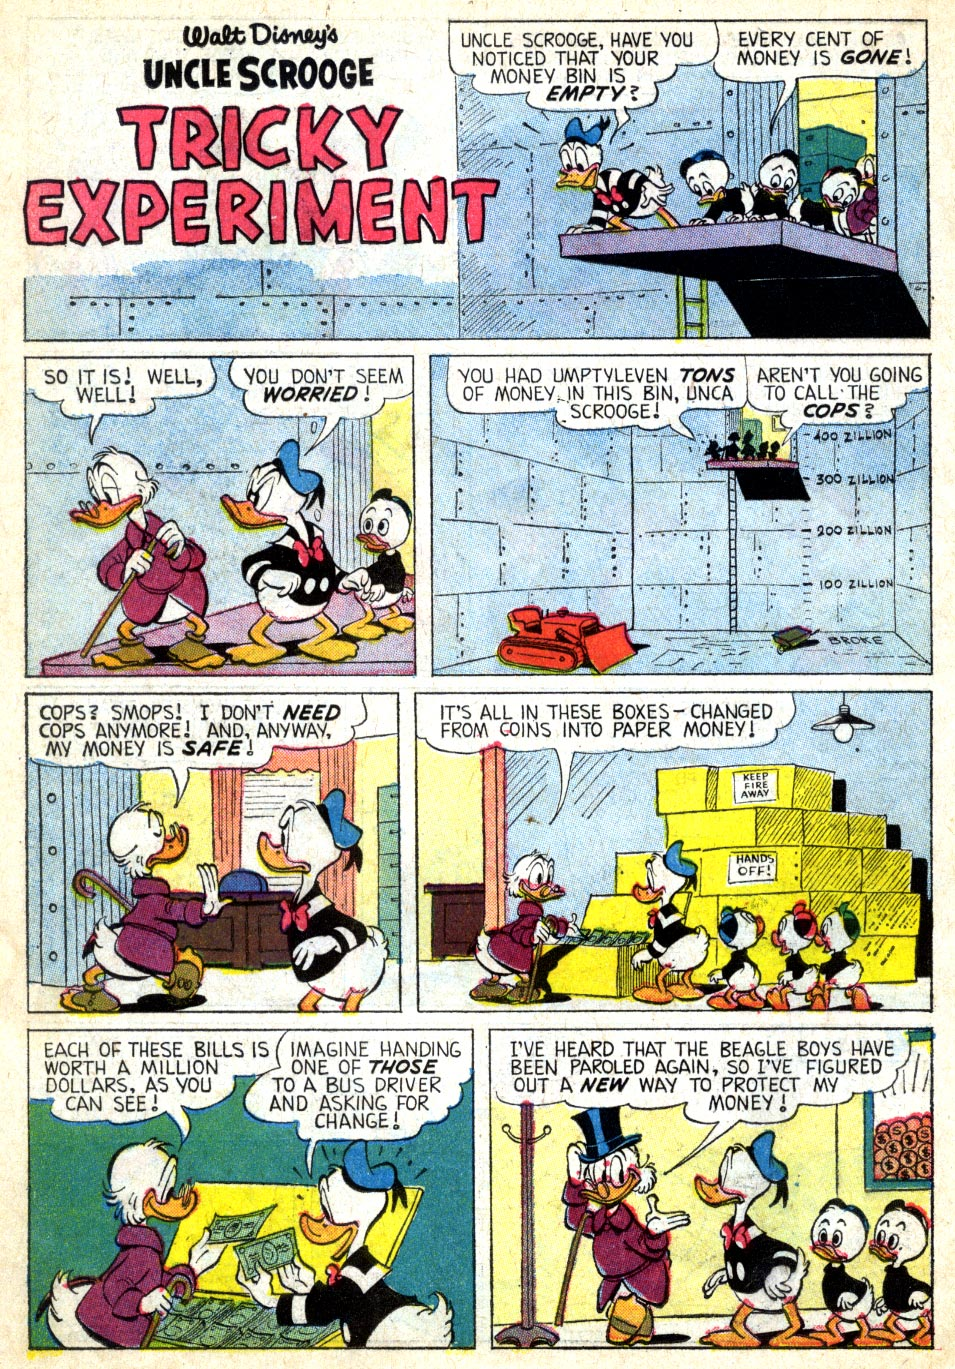 inefree.com/uncle-scroog #366 - English 25